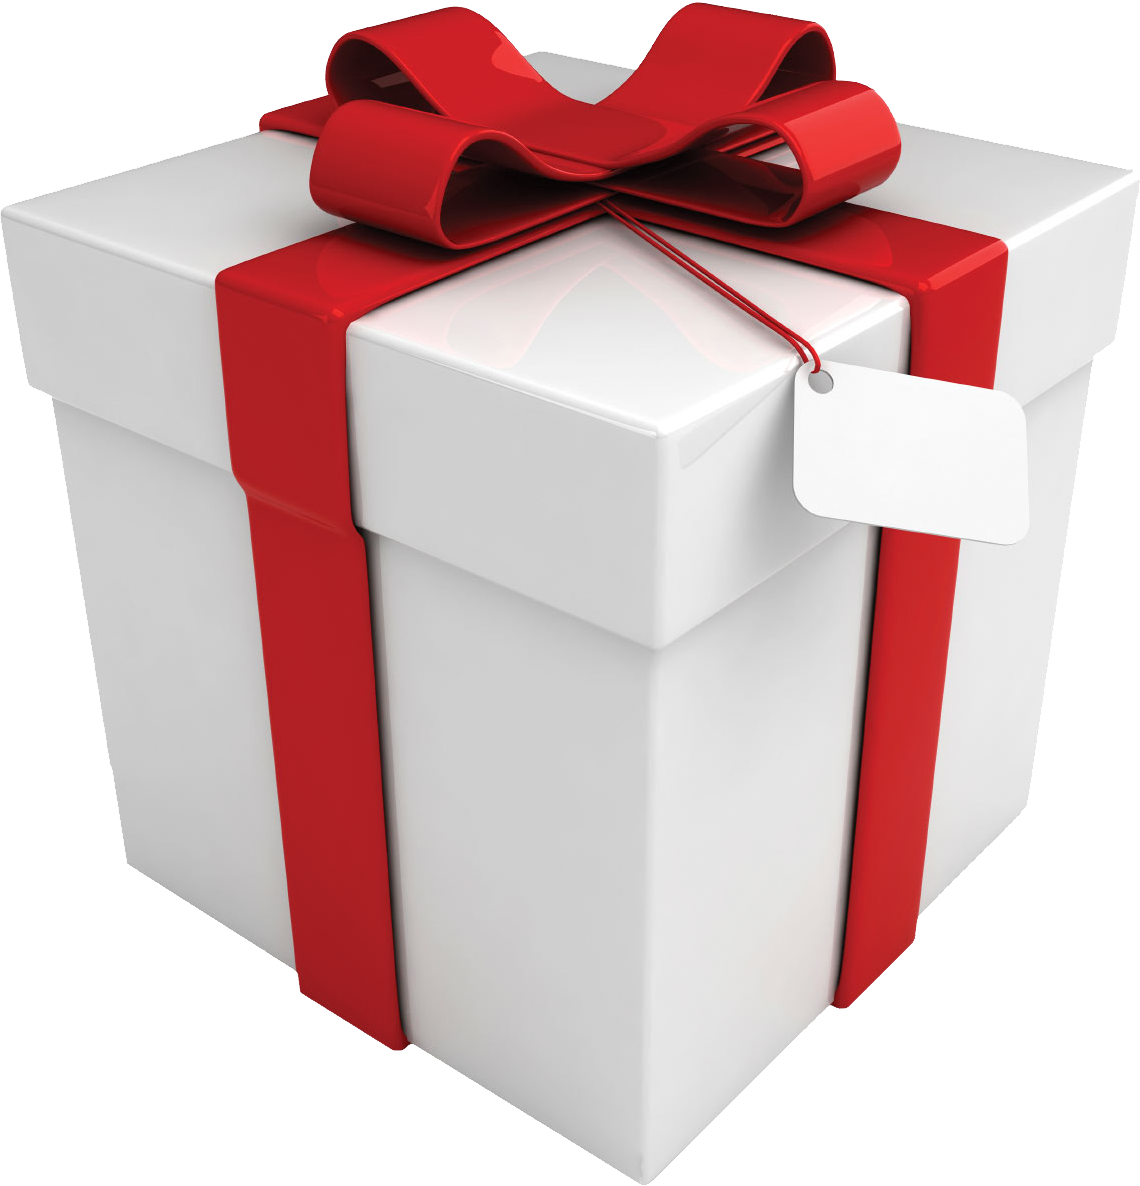 Gift PNG Images Transparent Free Download.